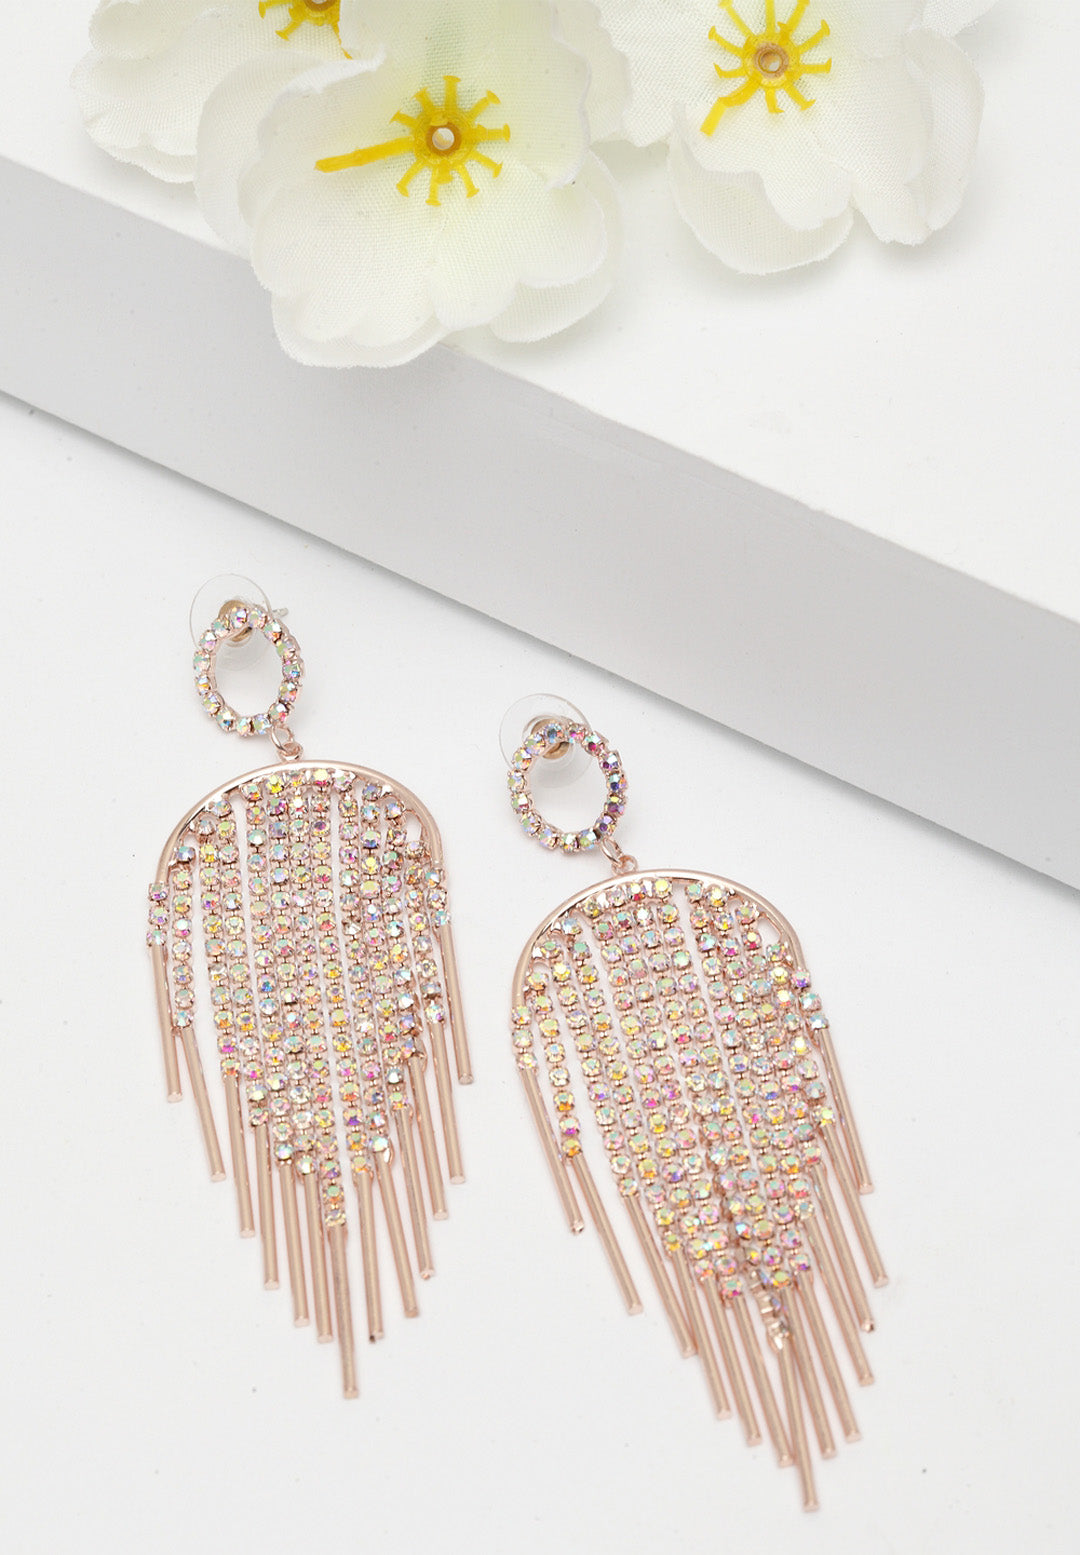 Avant-Garde Paris Sleek And Plush Crystal Dangling Earrings